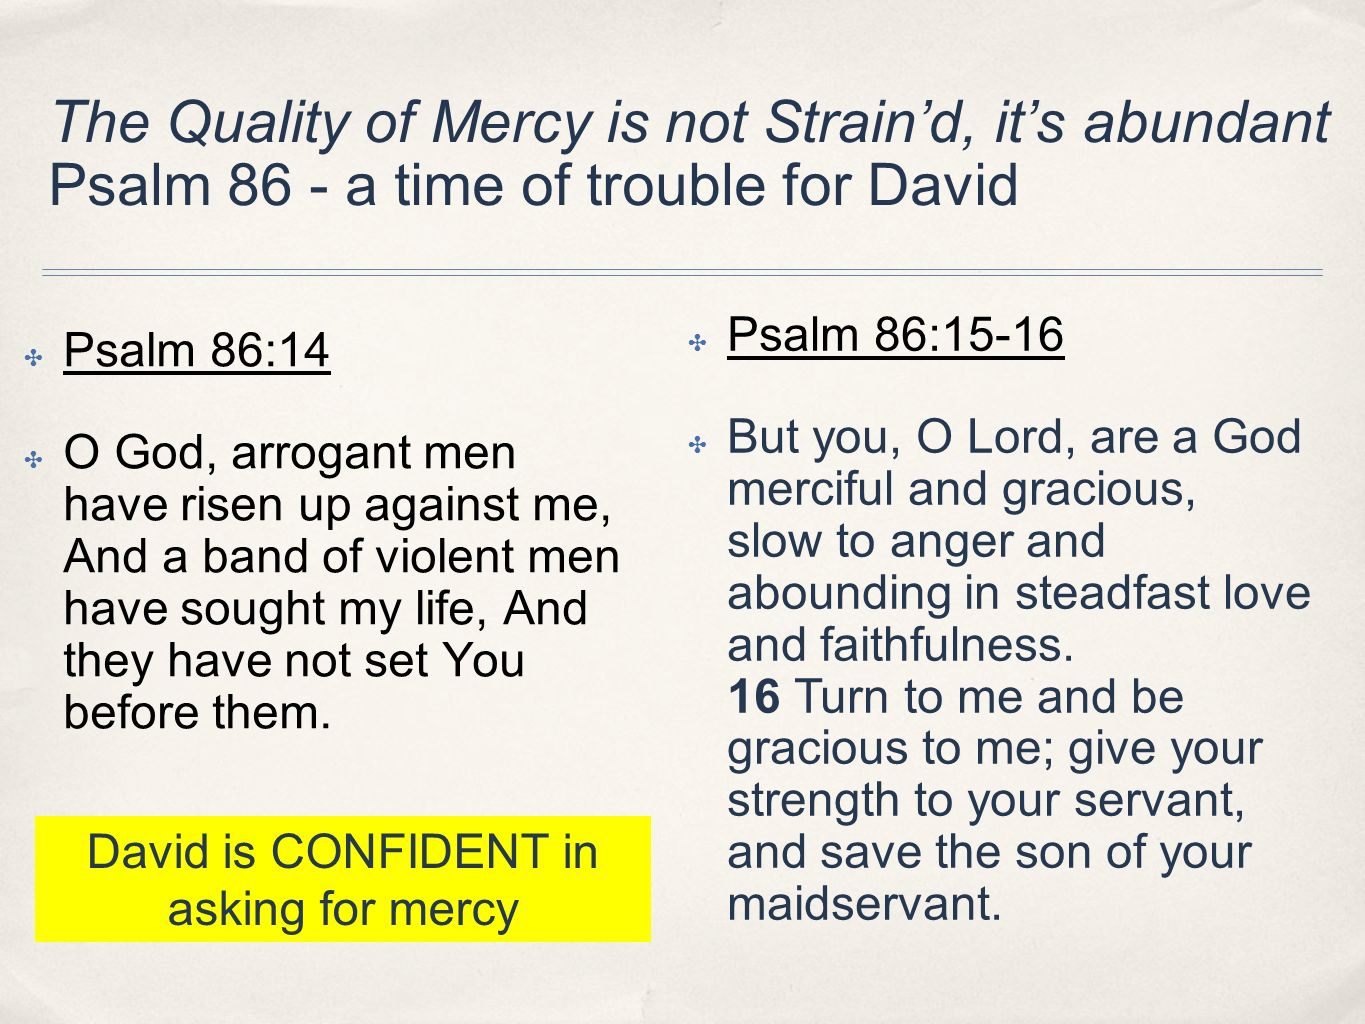 David is CONFIDENT in asking for mercy